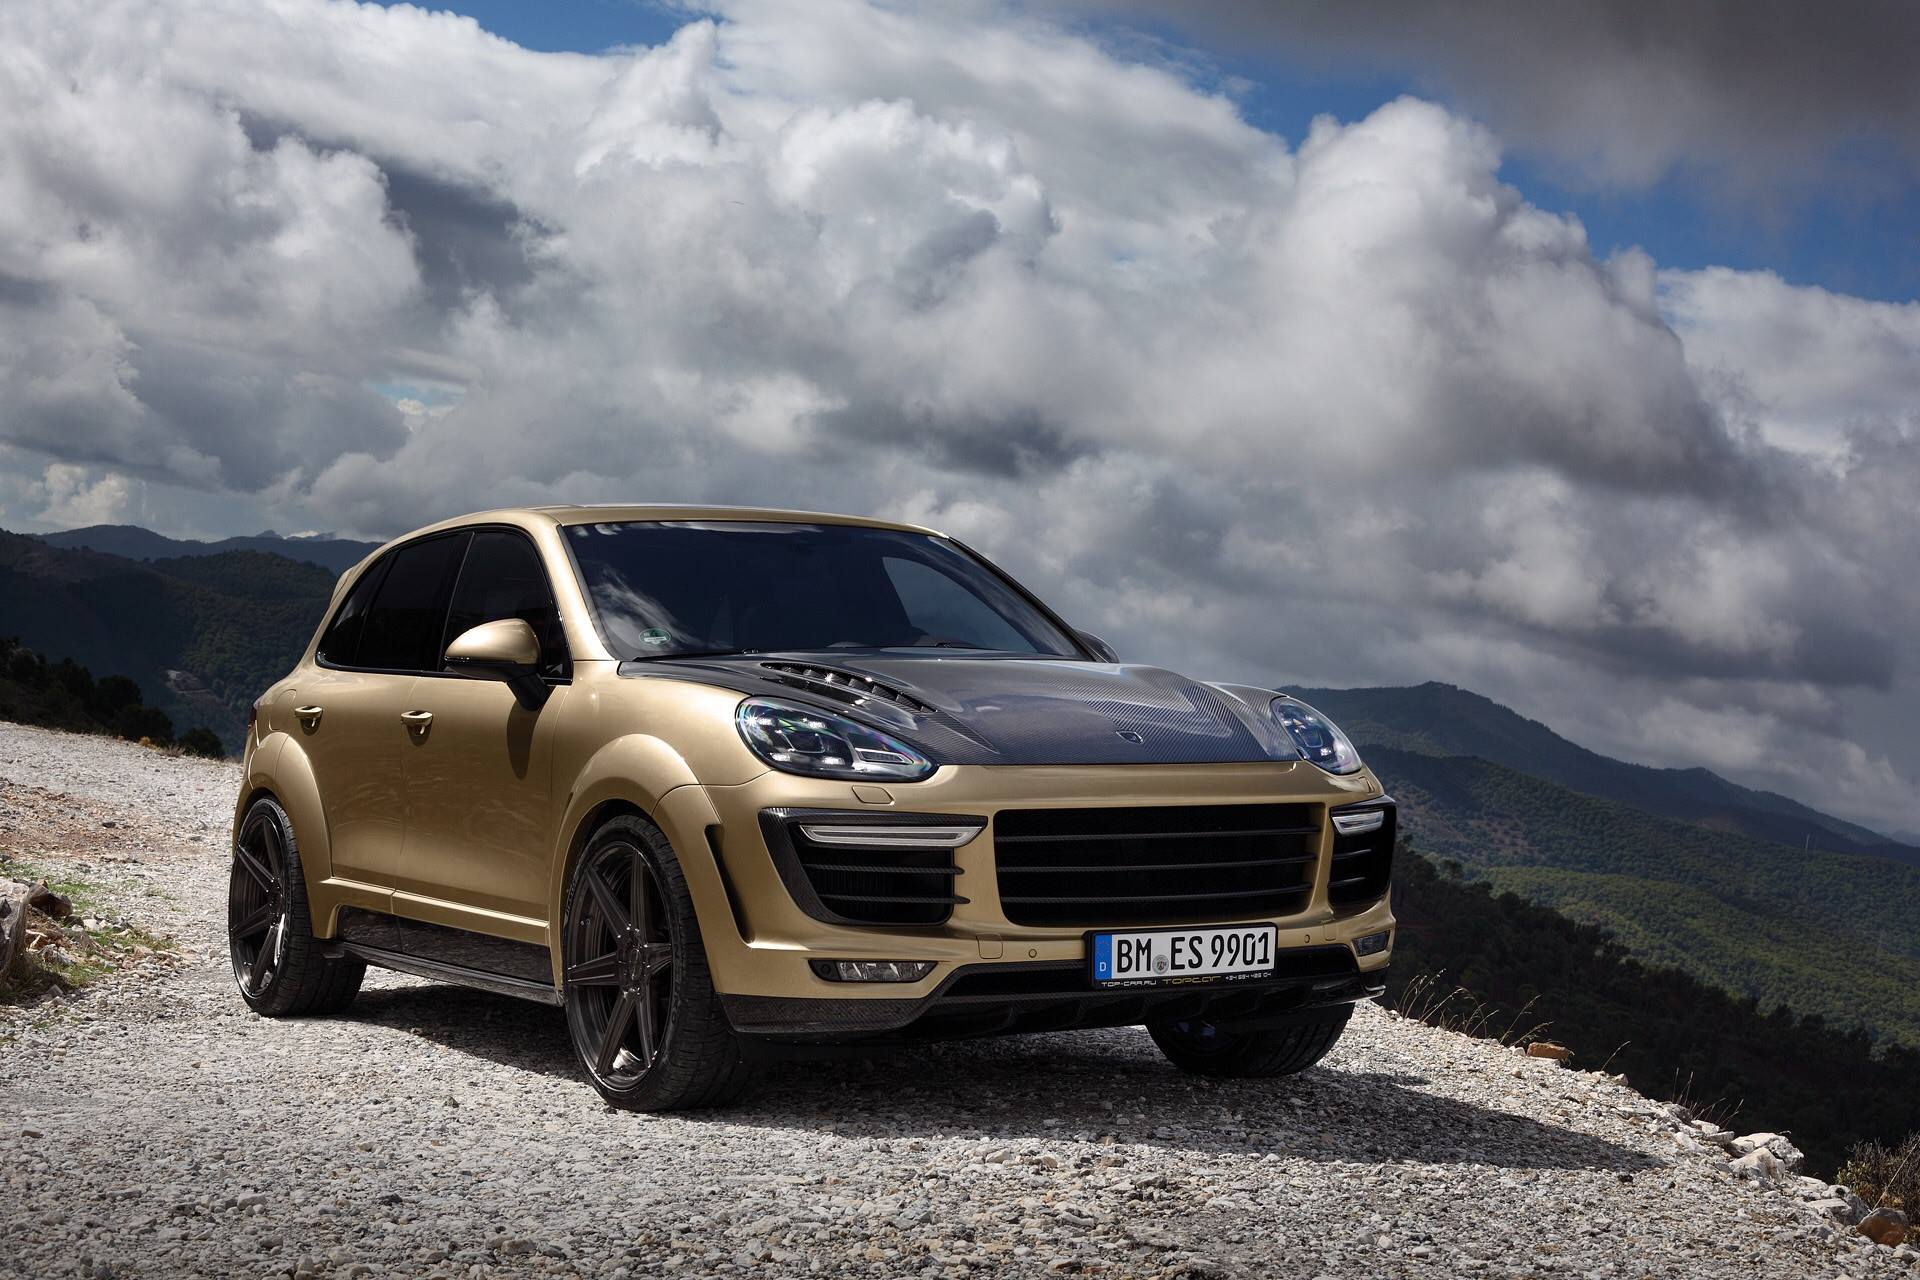 2015 Porsche Cayenne HD Wallpapers: Subtle Giant ...